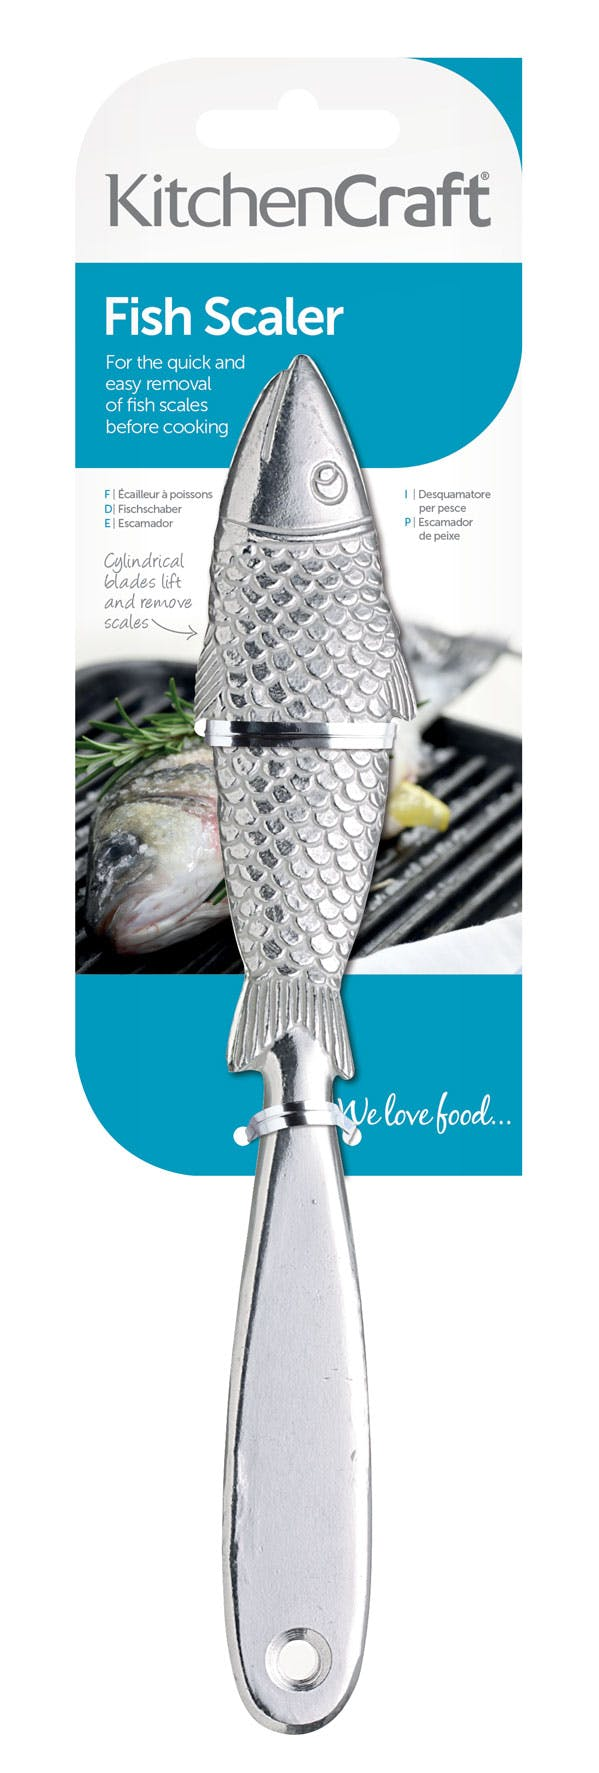 KitchenCraft Fish Scaler